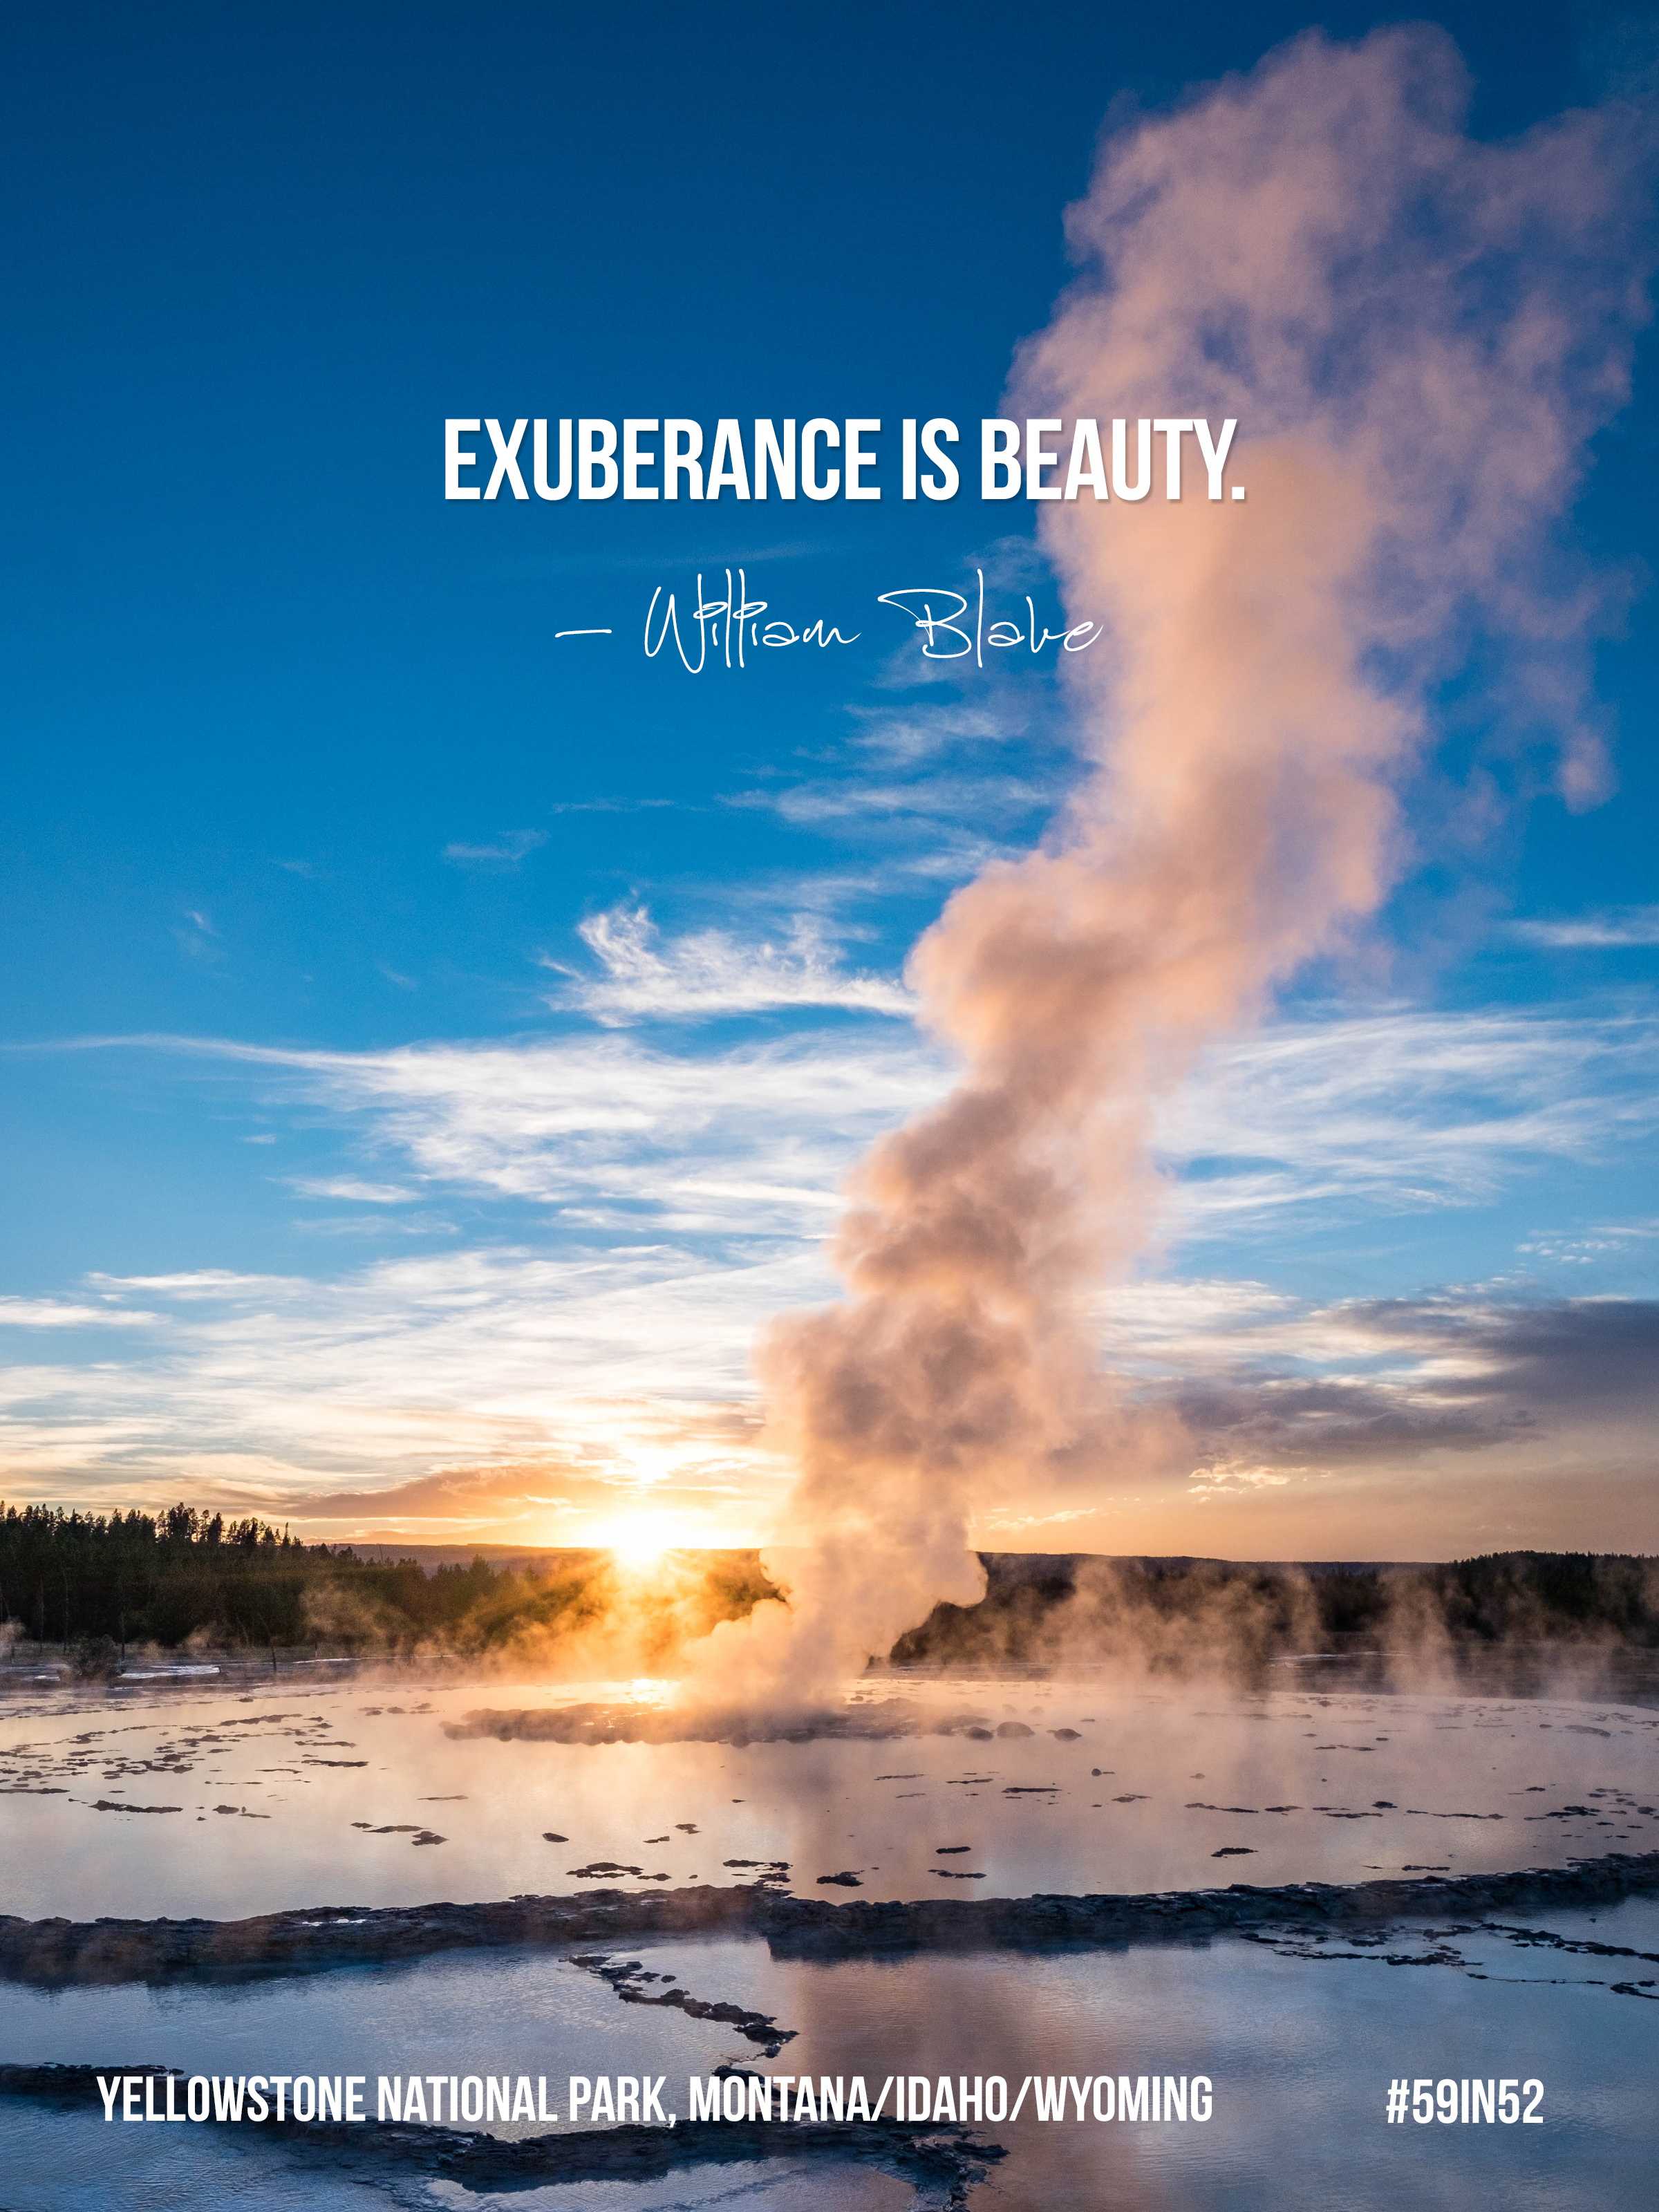 'Exuberance is beauty.' - William Blake